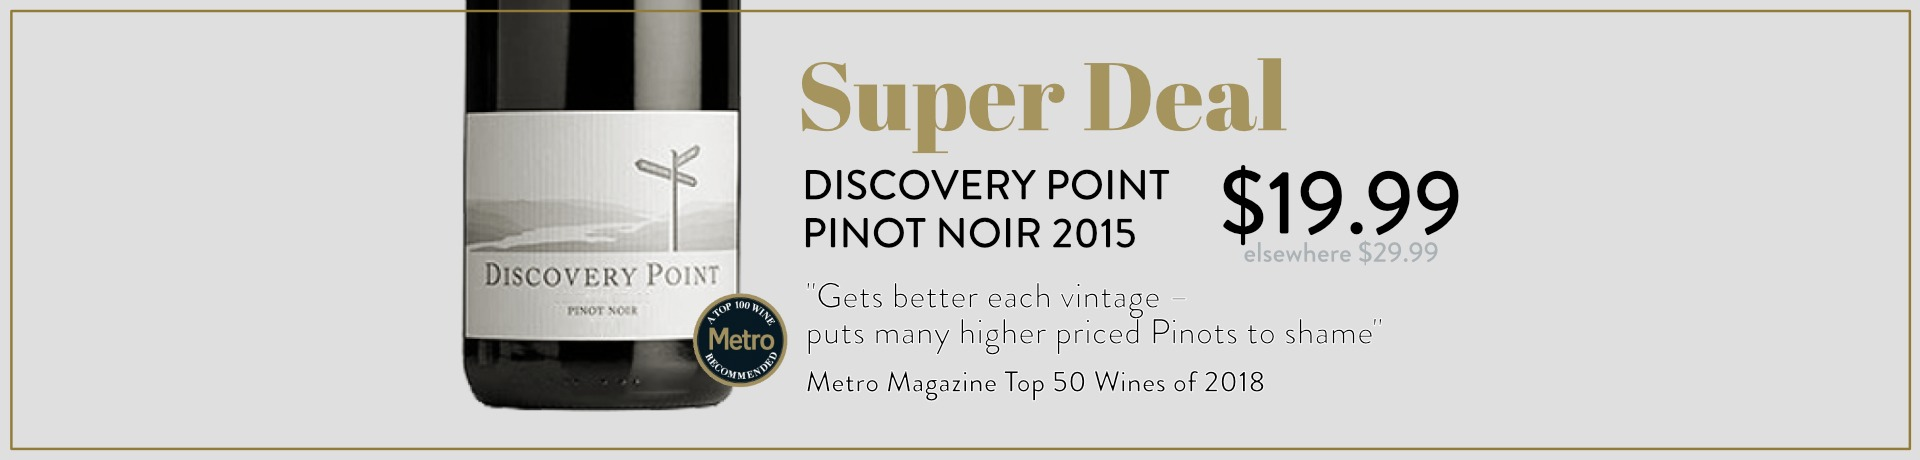 Discovery Point Pinot Noir 2015